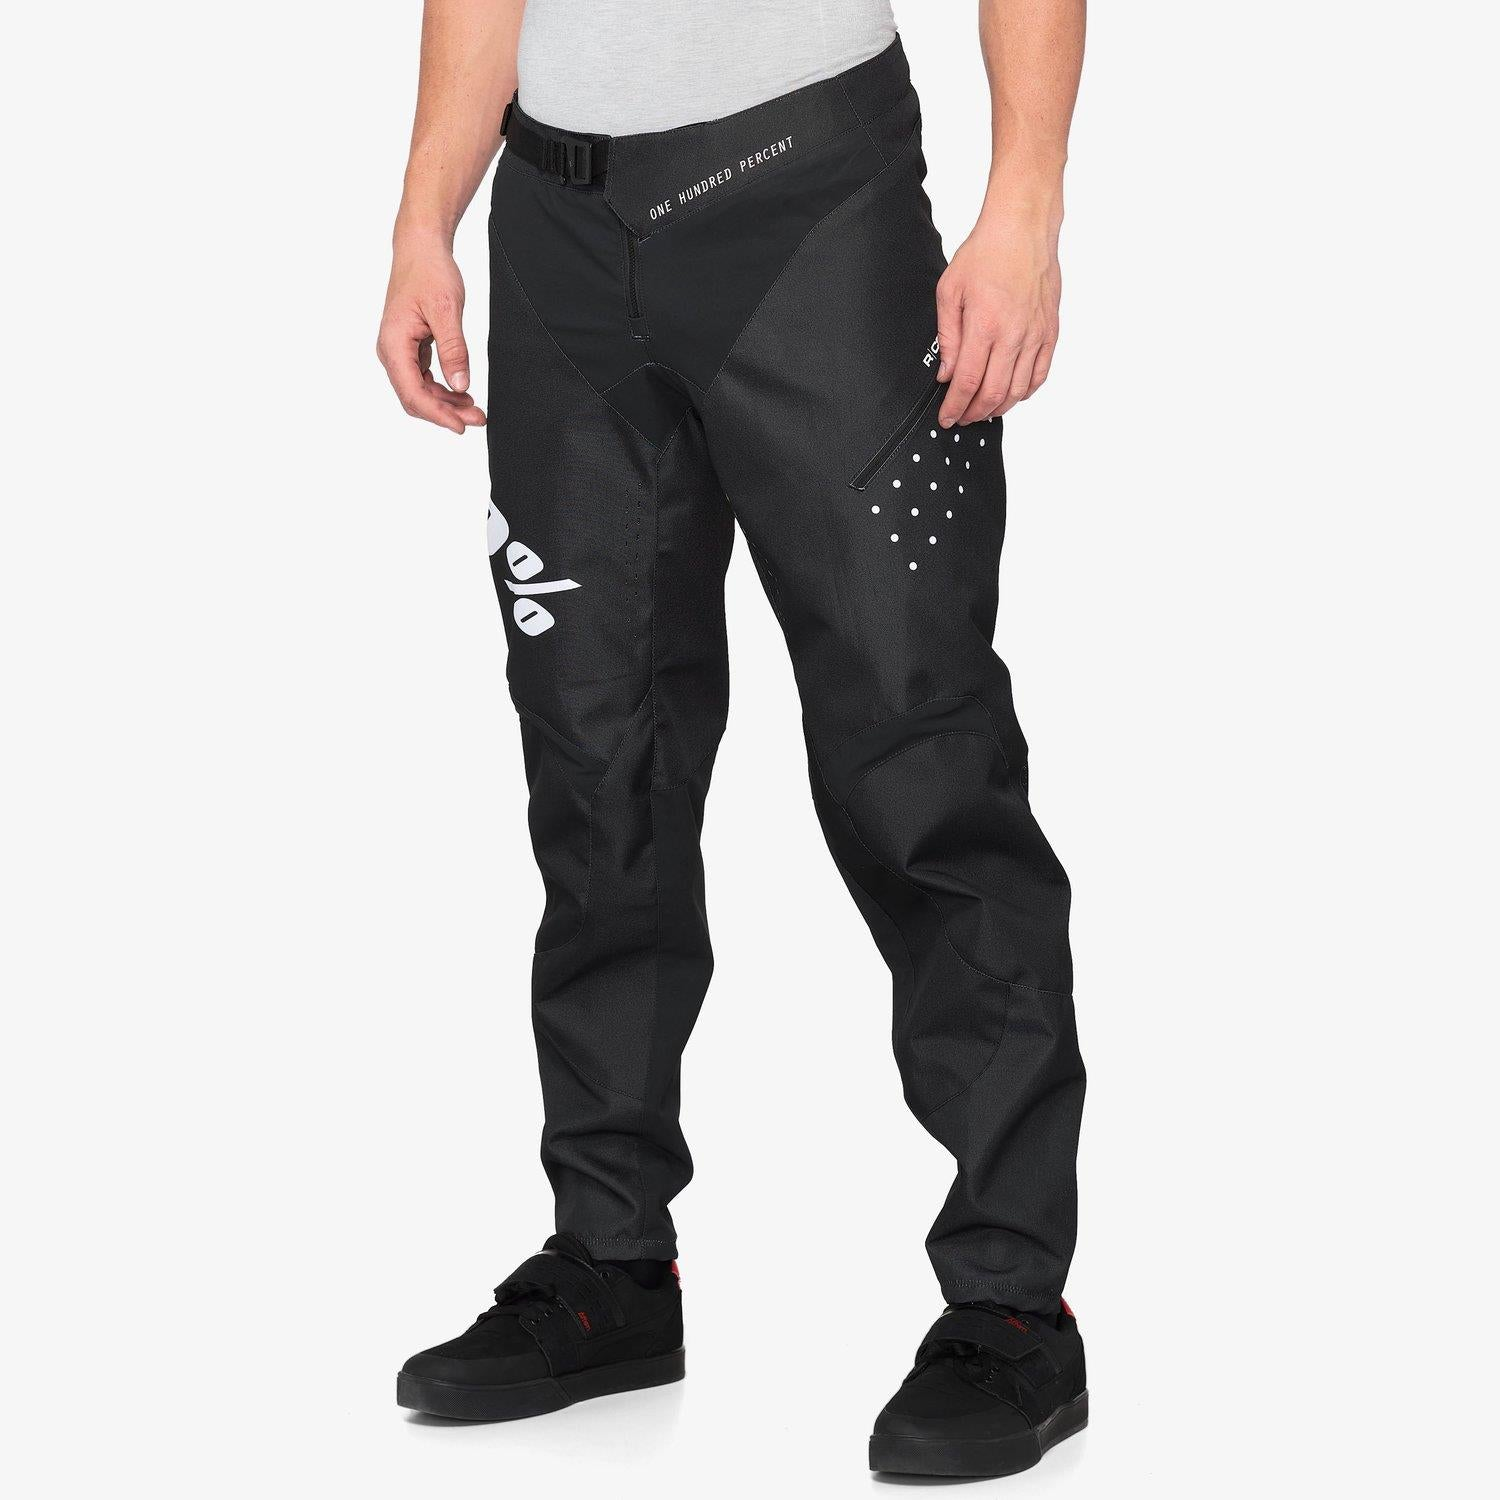 100% R-Core Race Pants - Black